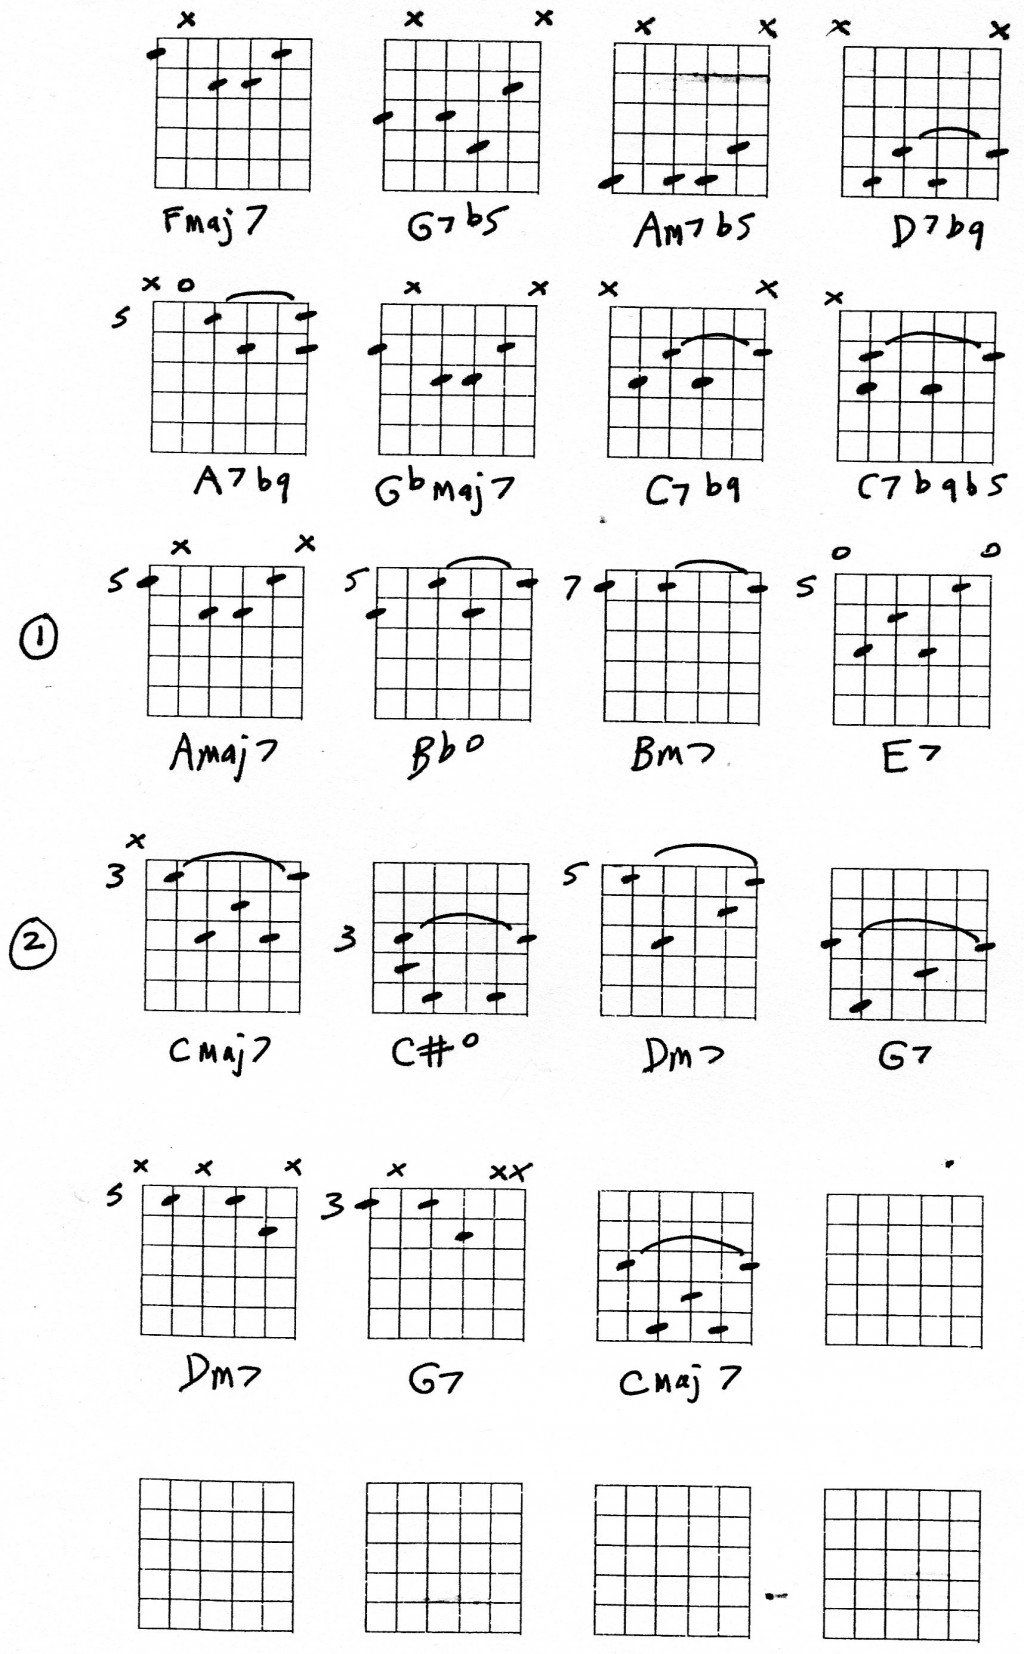 guitar chords lesson on latin jazz chords bossa nova chords open tuning chords and stuff in. Black Bedroom Furniture Sets. Home Design Ideas